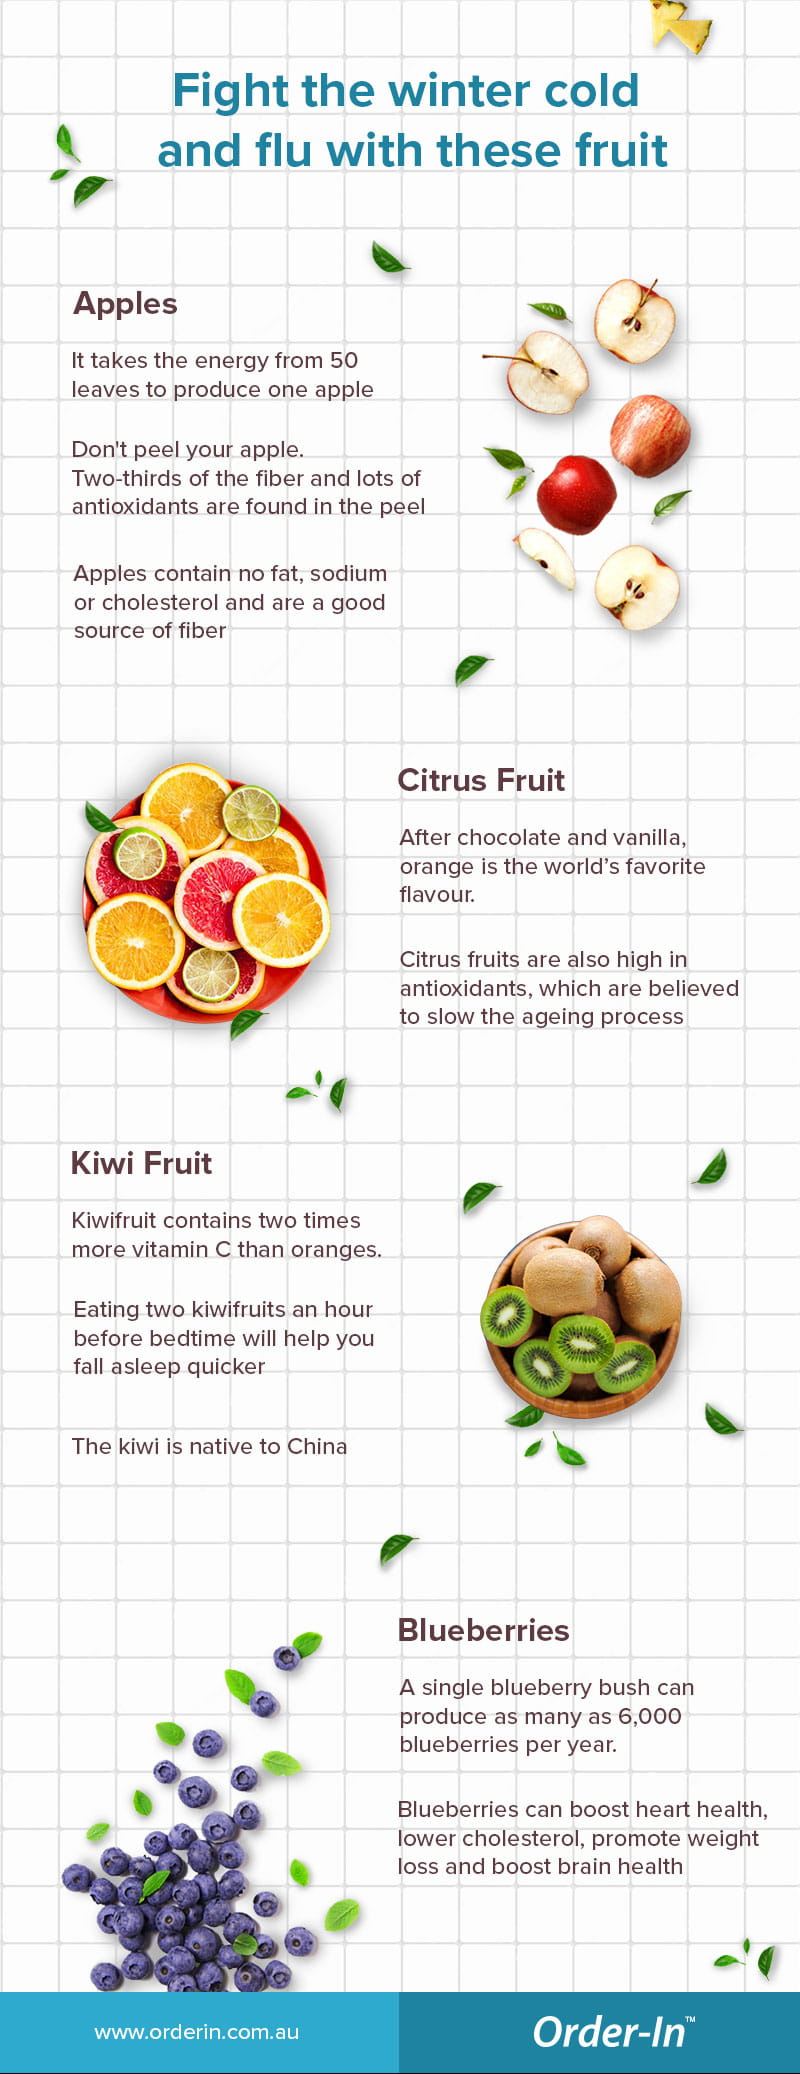 fight the winter cold and flu with these fruit